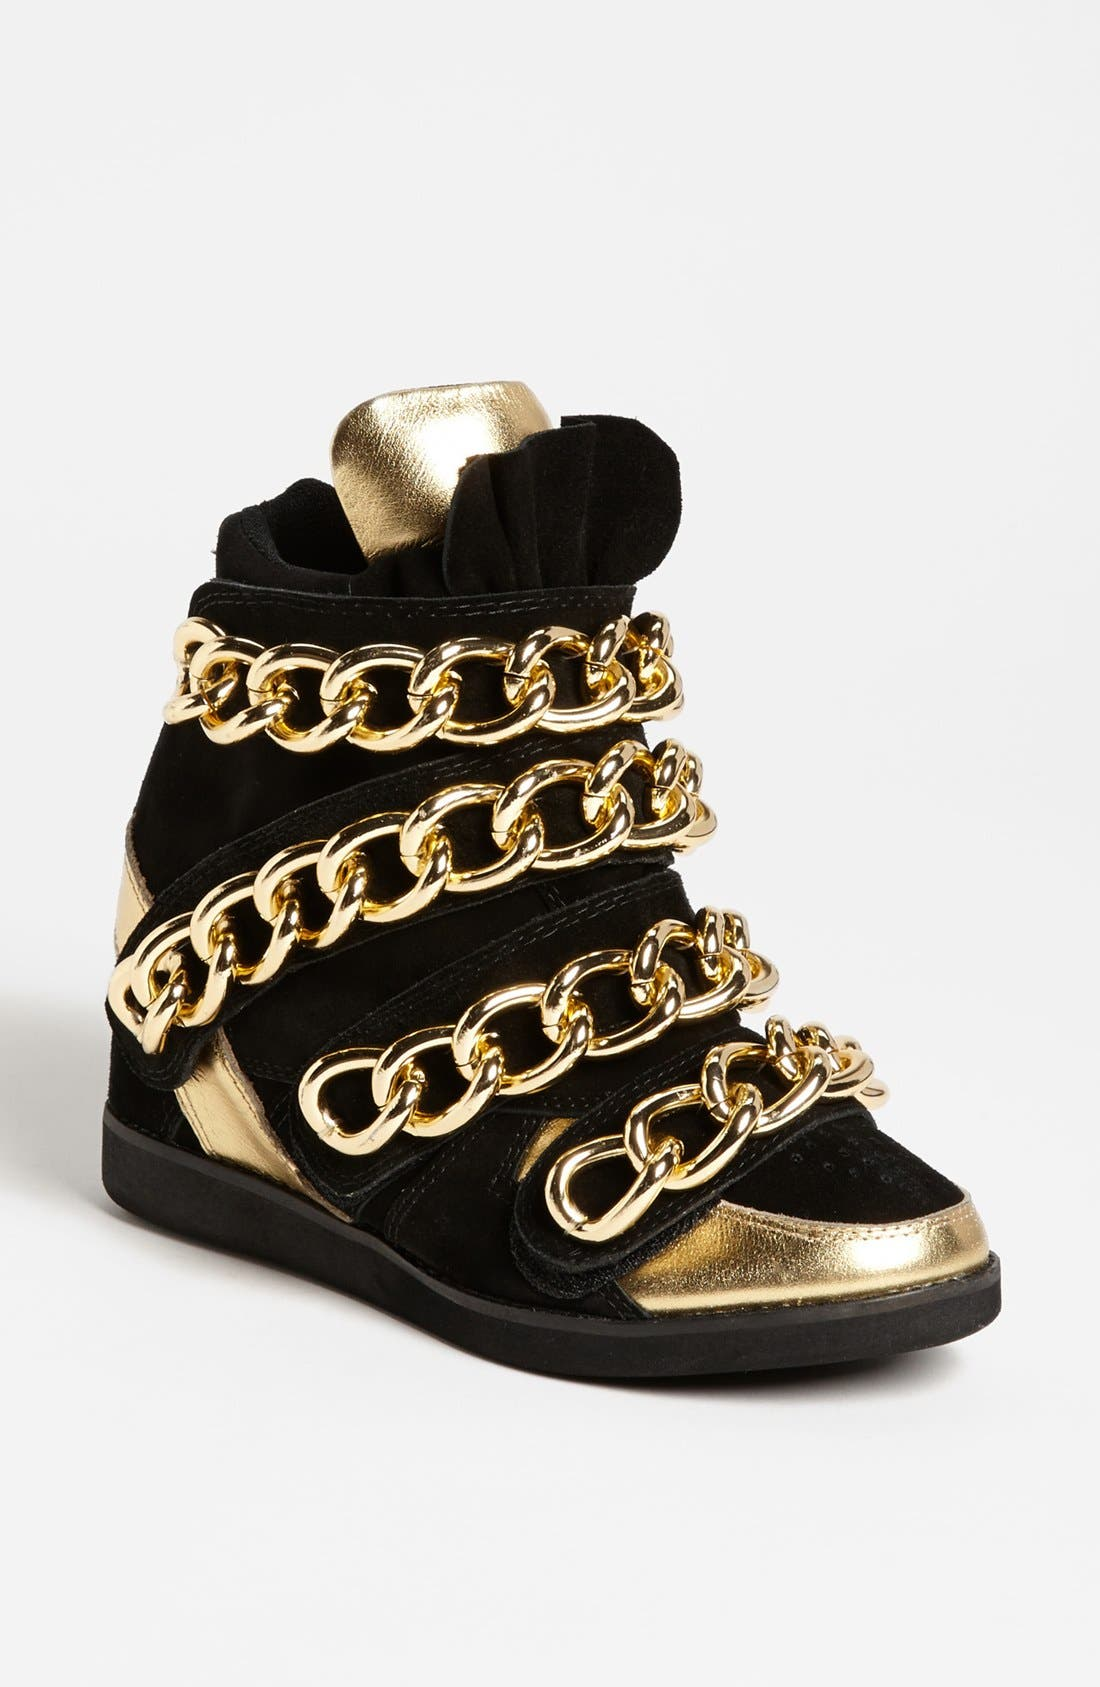 Main Image - Jeffrey Campbell 'Almost' Wedge Sneaker